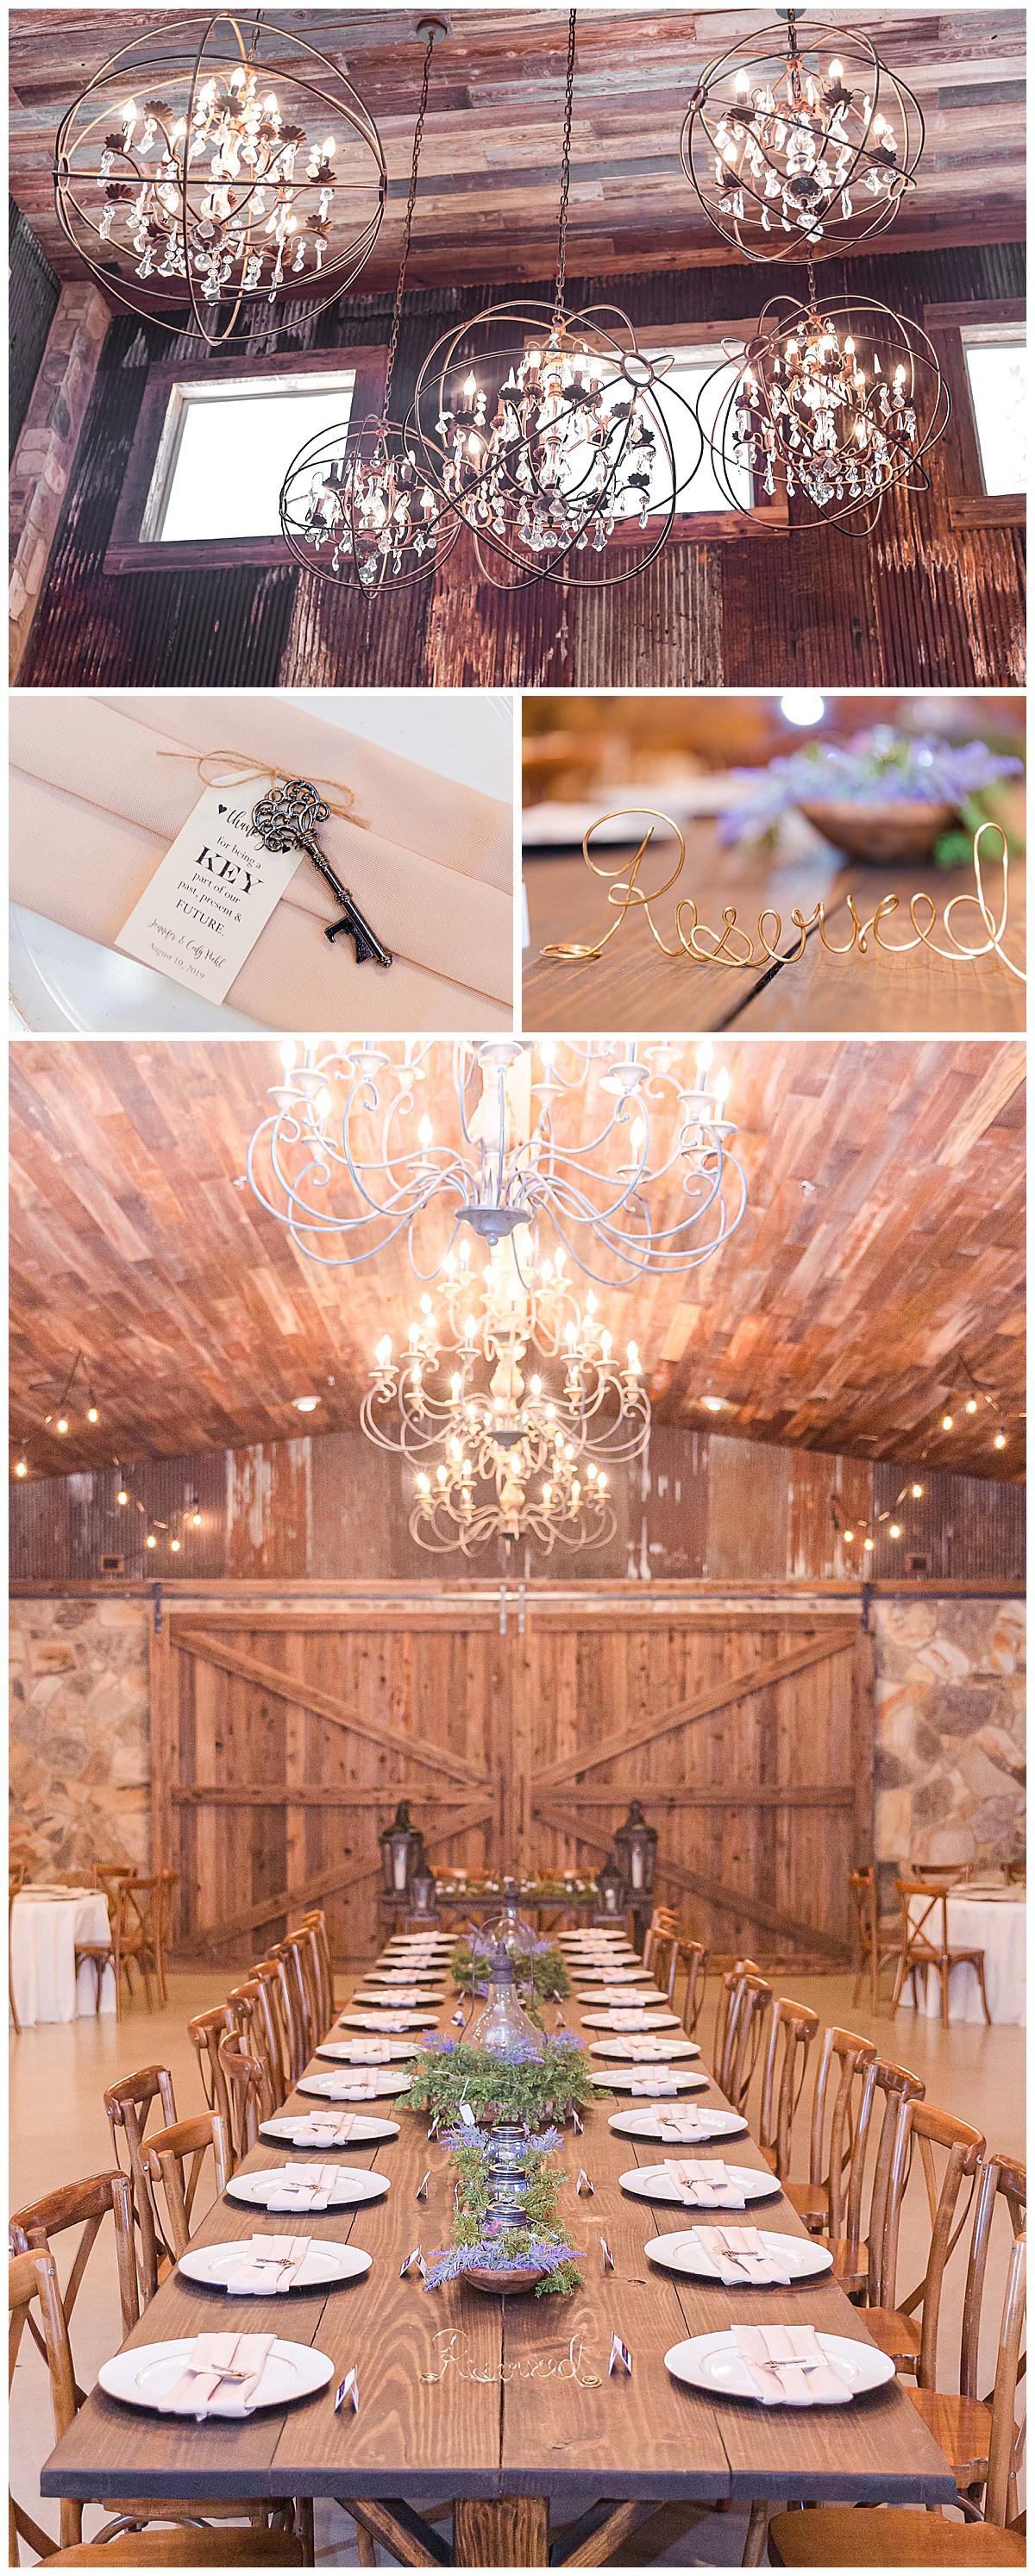 Texas-Magnolia-Bells-Rustic-Wedding-Carly-Barton-Photography_0057.jpg